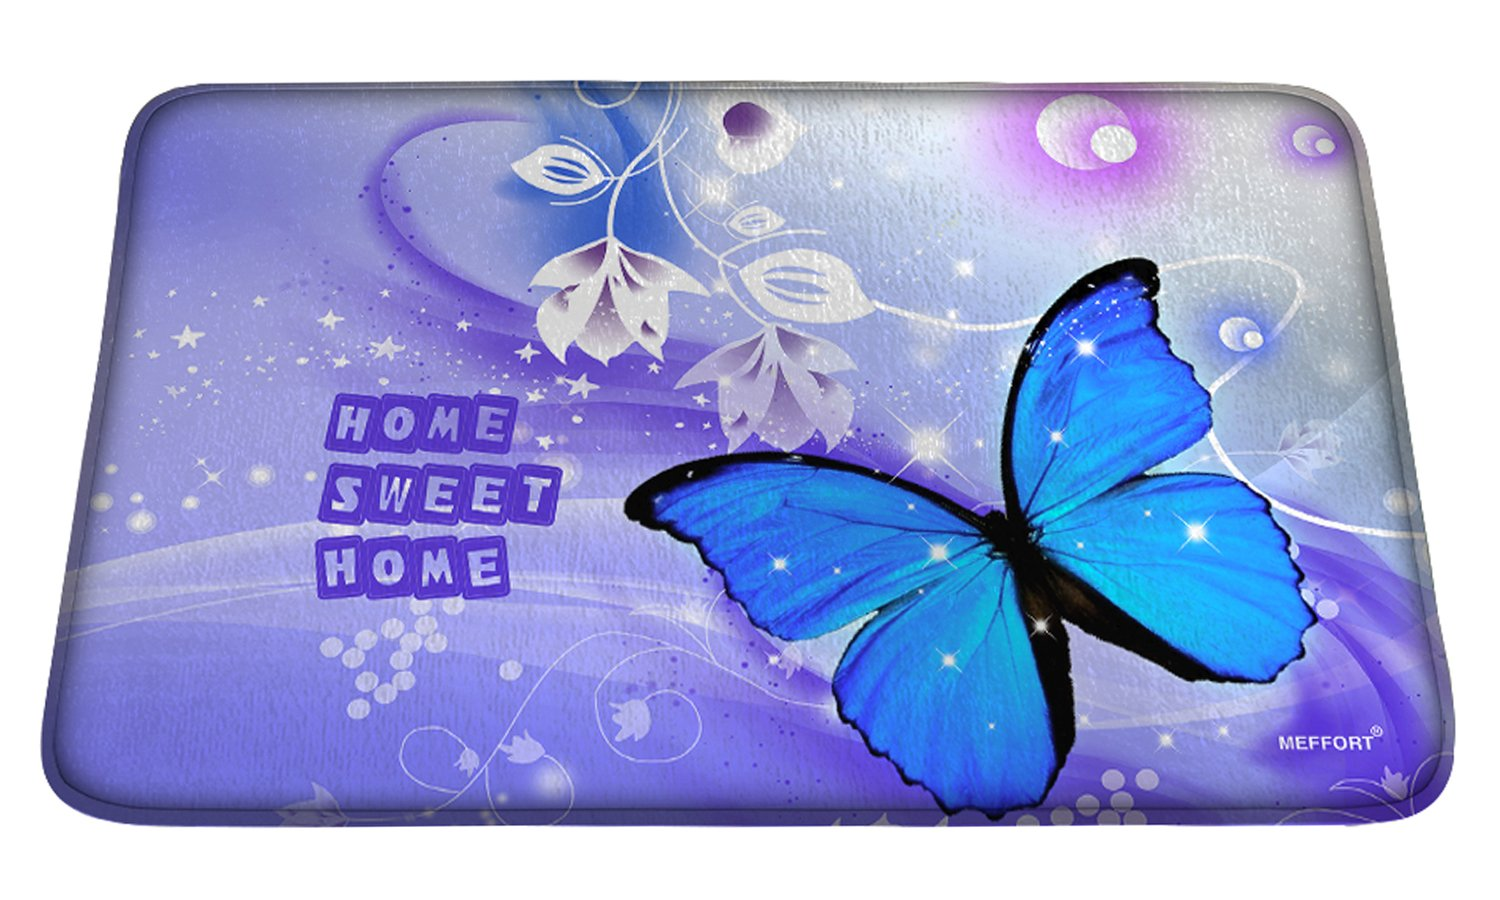 Meffort Inc Printed Soft Floor Door Mat Carpet/Area Entry Rugs for Kitchen Dining Living Hallway Bathroom - Blue Purple Butterfly, Large Size by Meffort Inc